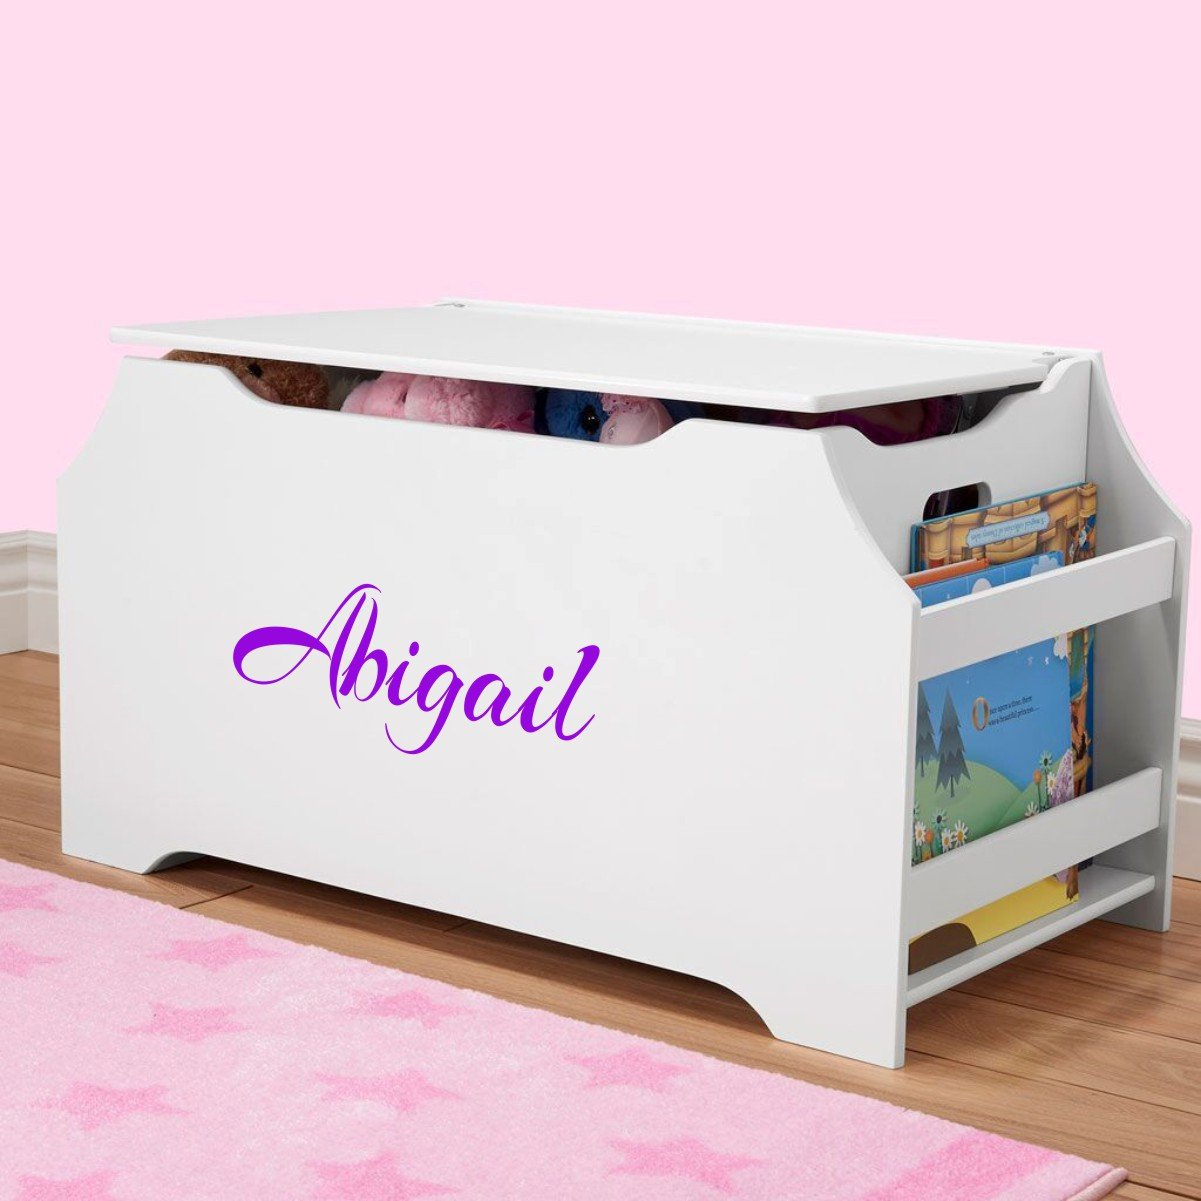 DIBSIES Personalization Station Personalized Dibsies Kids Toy Box with Book Storage - Girls (White) by DIBSIES Personalization Station